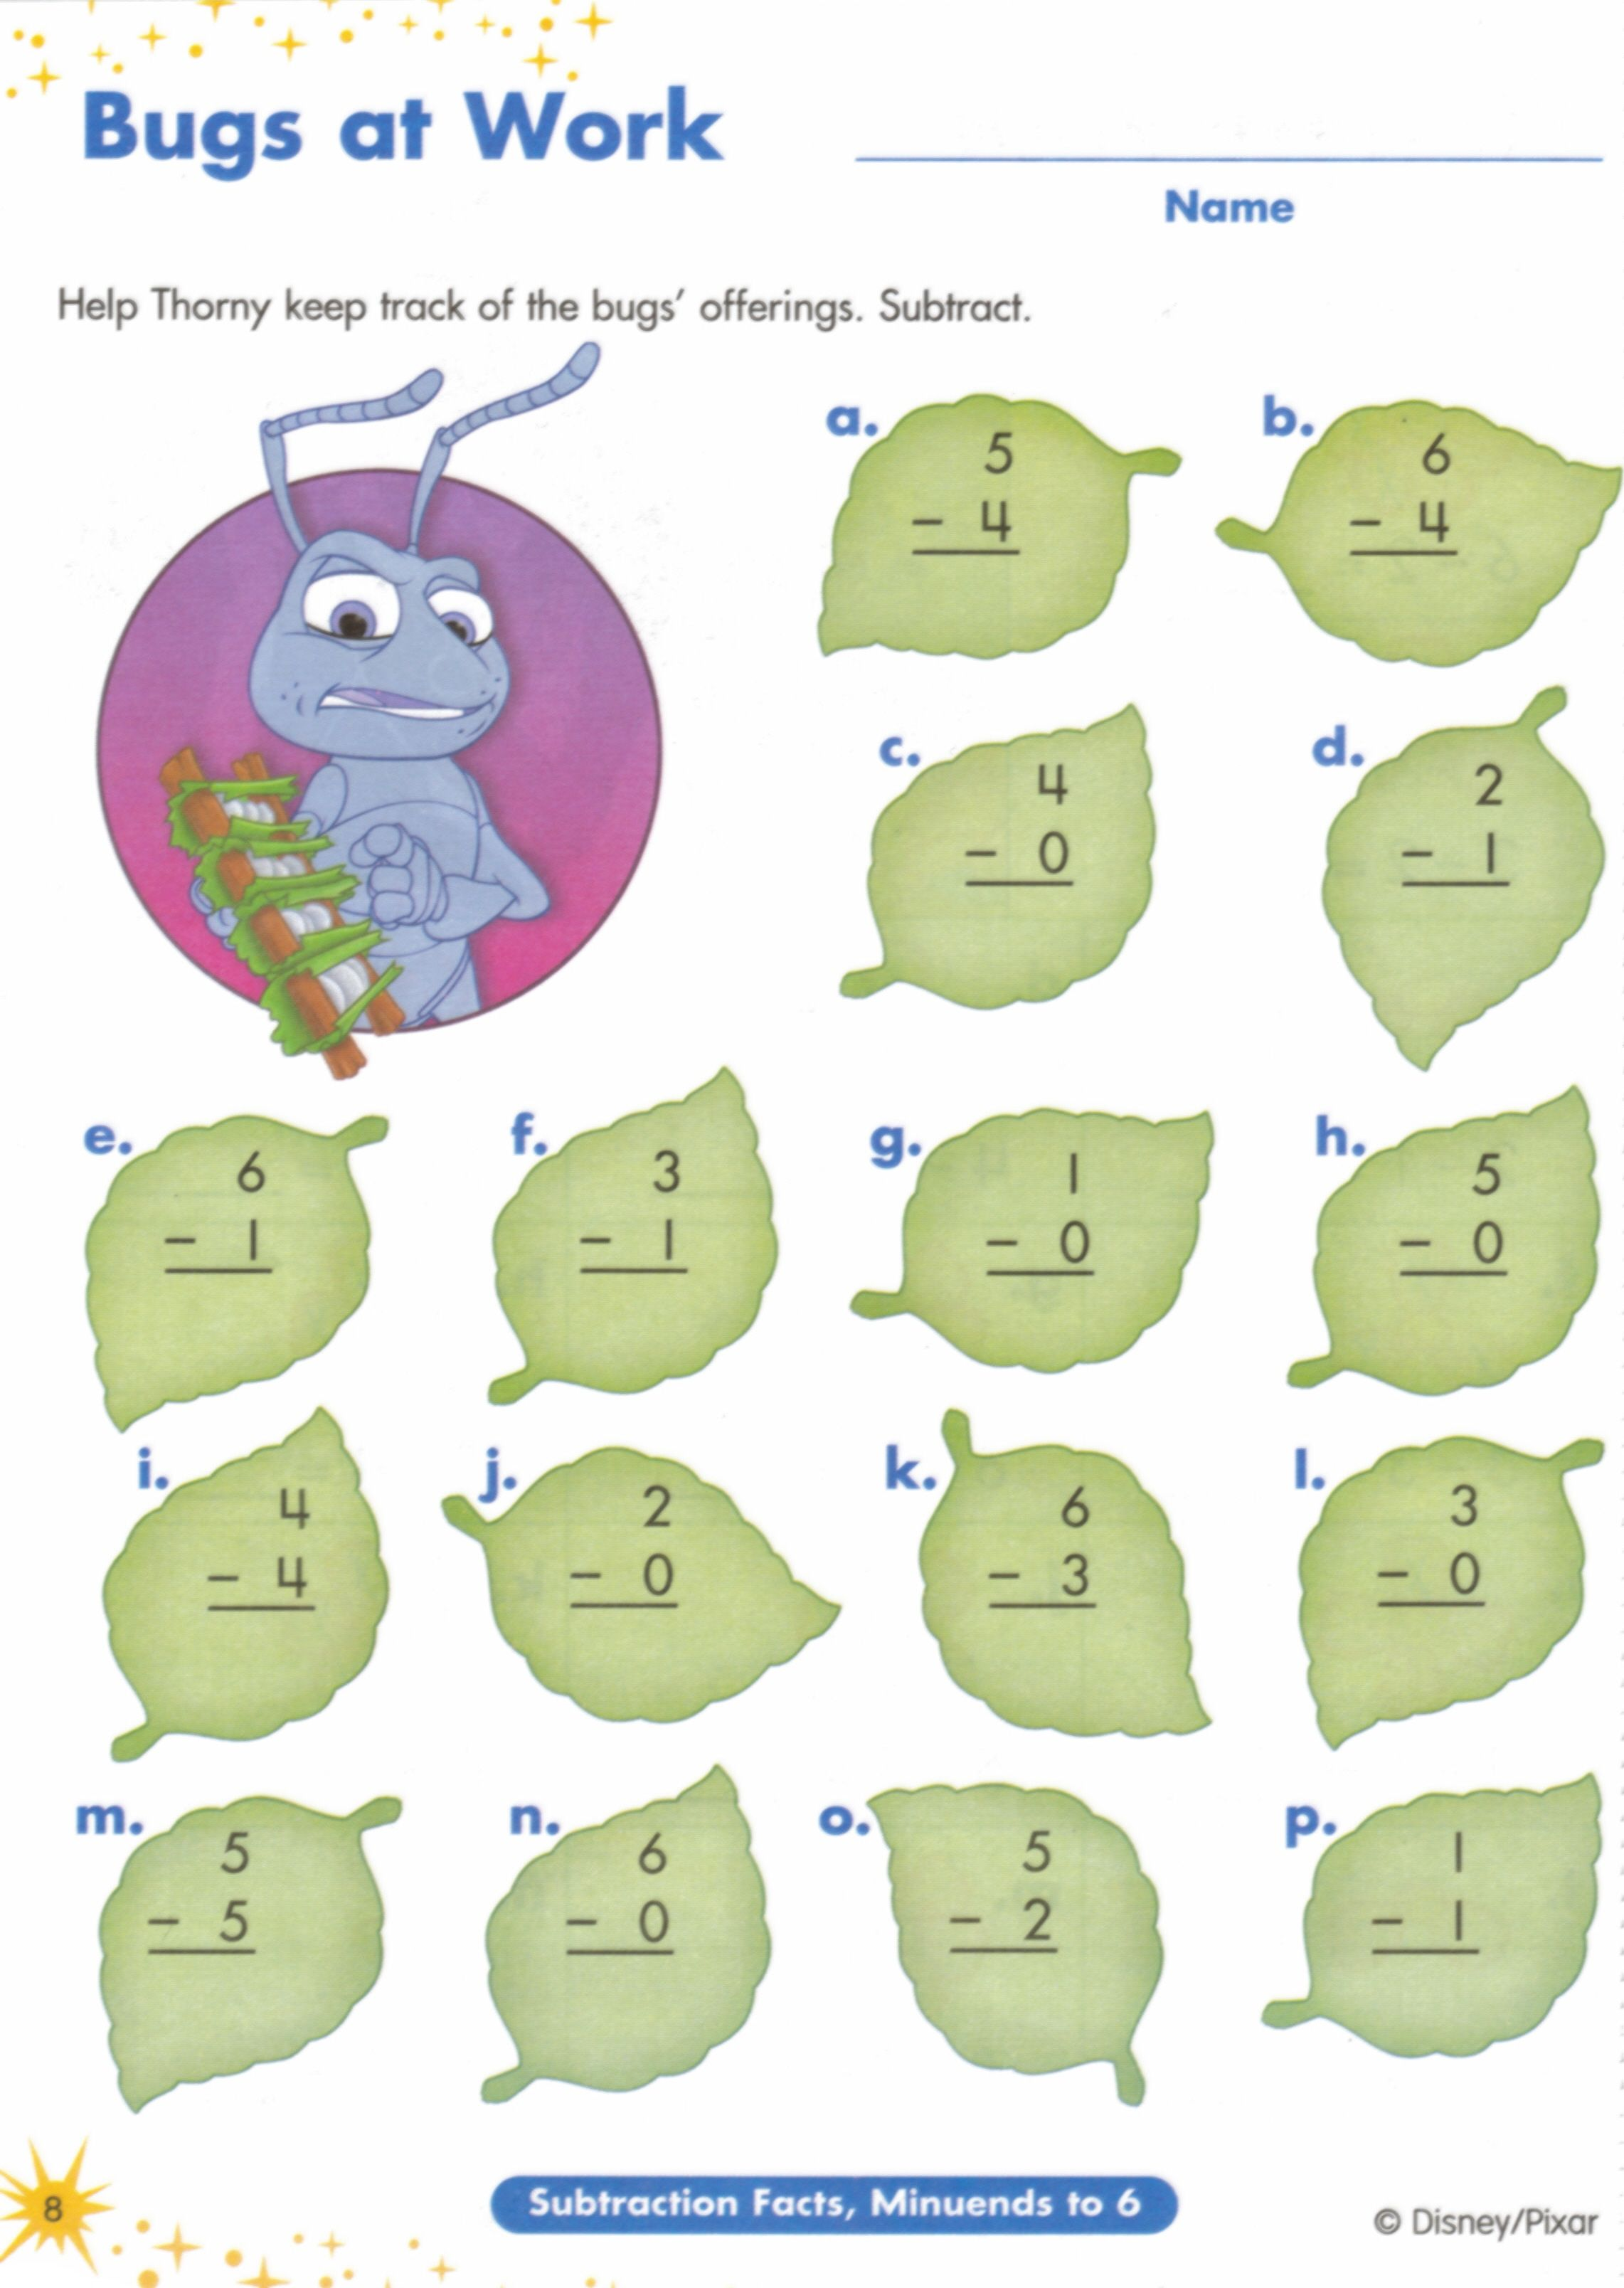 Weirdmailus  Sweet  Images About Worksheets On Pinterest  Fun Facts For Kids  With Marvelous  Images About Worksheets On Pinterest  Fun Facts For Kids Earth Day Worksheets And Jungles With Attractive Division Decimals Worksheet Also Pragmatic Worksheets In Addition  Times Table Worksheet Printable And Ks Geography Worksheets As Well As Human Biology Worksheets Additionally Rotating Shapes Ks Worksheet From Pinterestcom With Weirdmailus  Marvelous  Images About Worksheets On Pinterest  Fun Facts For Kids  With Attractive  Images About Worksheets On Pinterest  Fun Facts For Kids Earth Day Worksheets And Jungles And Sweet Division Decimals Worksheet Also Pragmatic Worksheets In Addition  Times Table Worksheet Printable From Pinterestcom